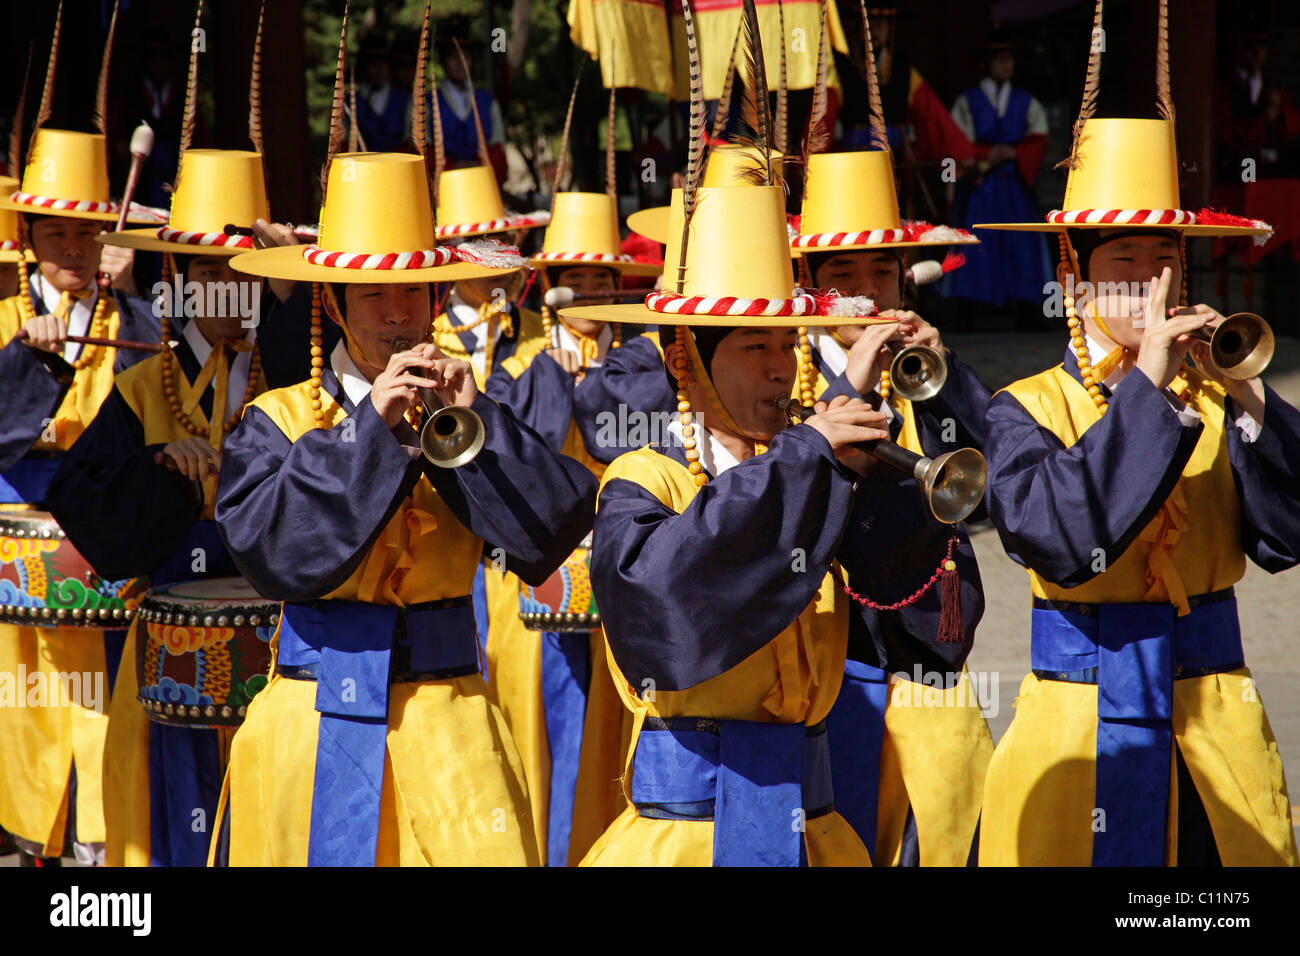 Ceremony of the guards with trumpets in front of the Deoksugung royal palace, Palace of Longevity, in the Korean Stock Photo